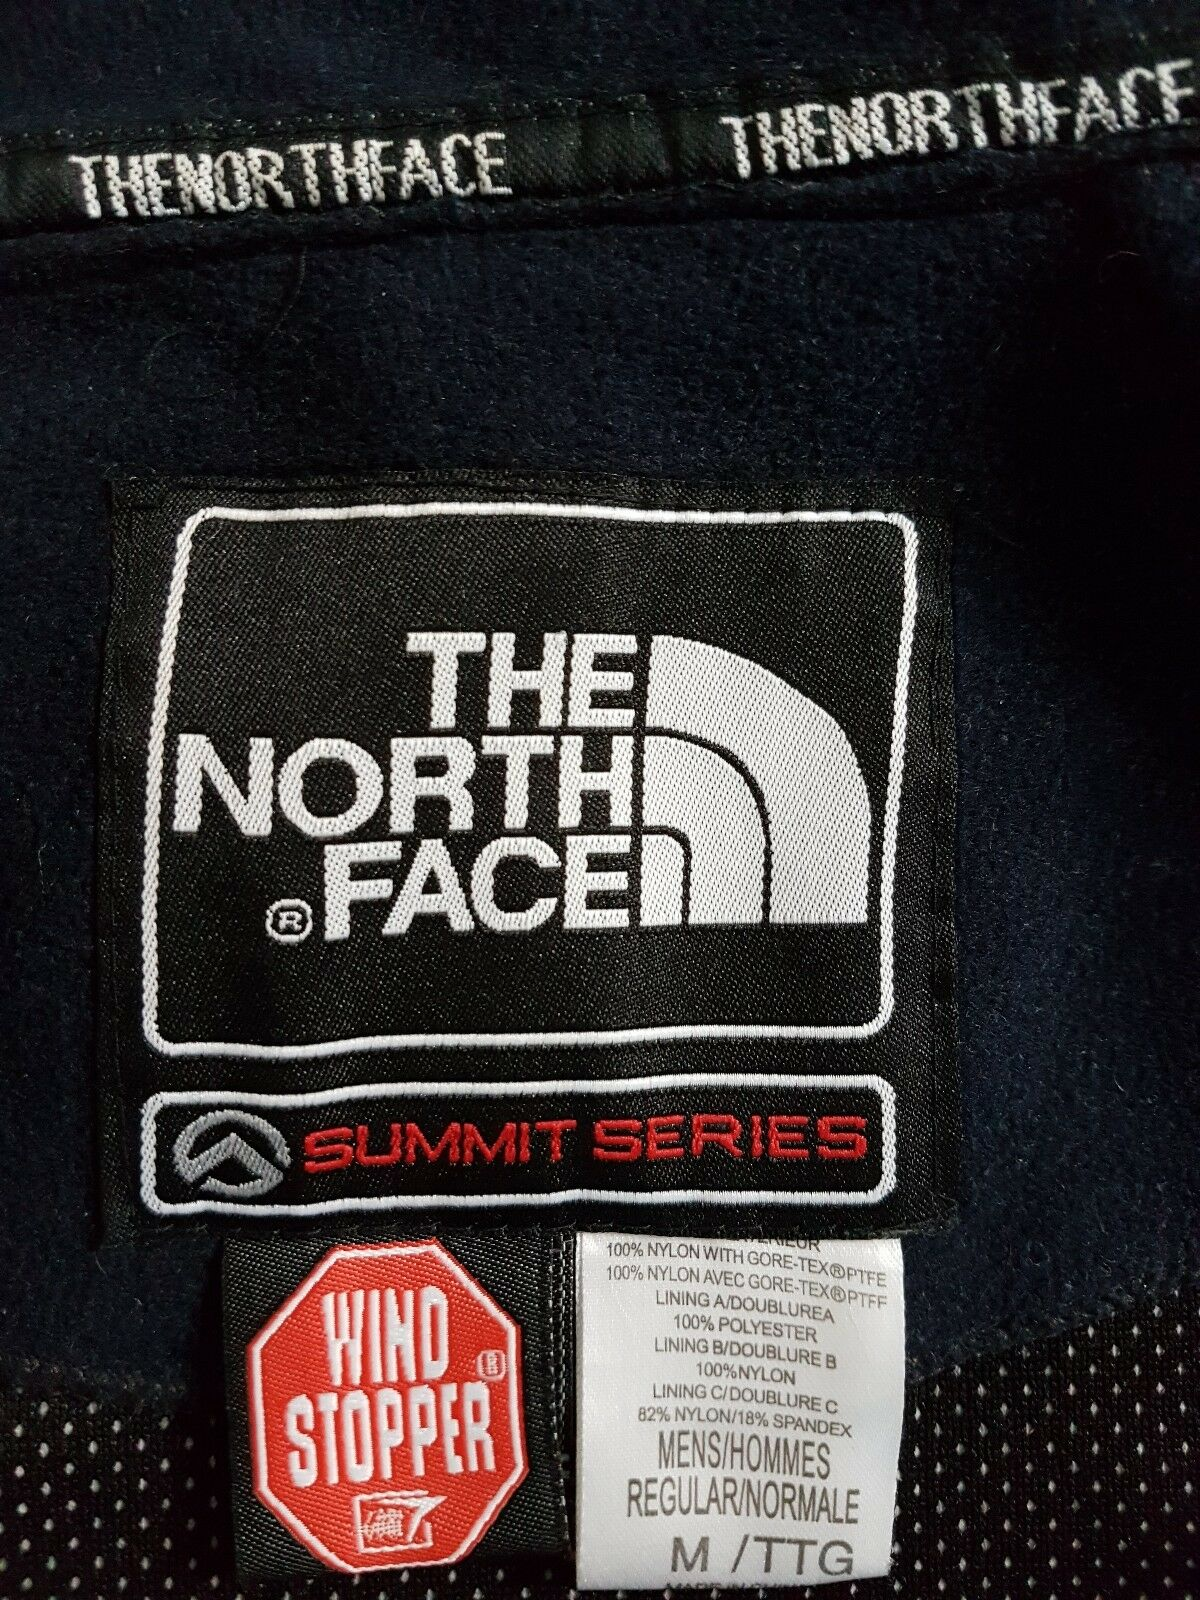 THE North Face Navy/BK Da Uomo Summit Series Windstopper Taglia M Giacca Cappotto Escursionismo